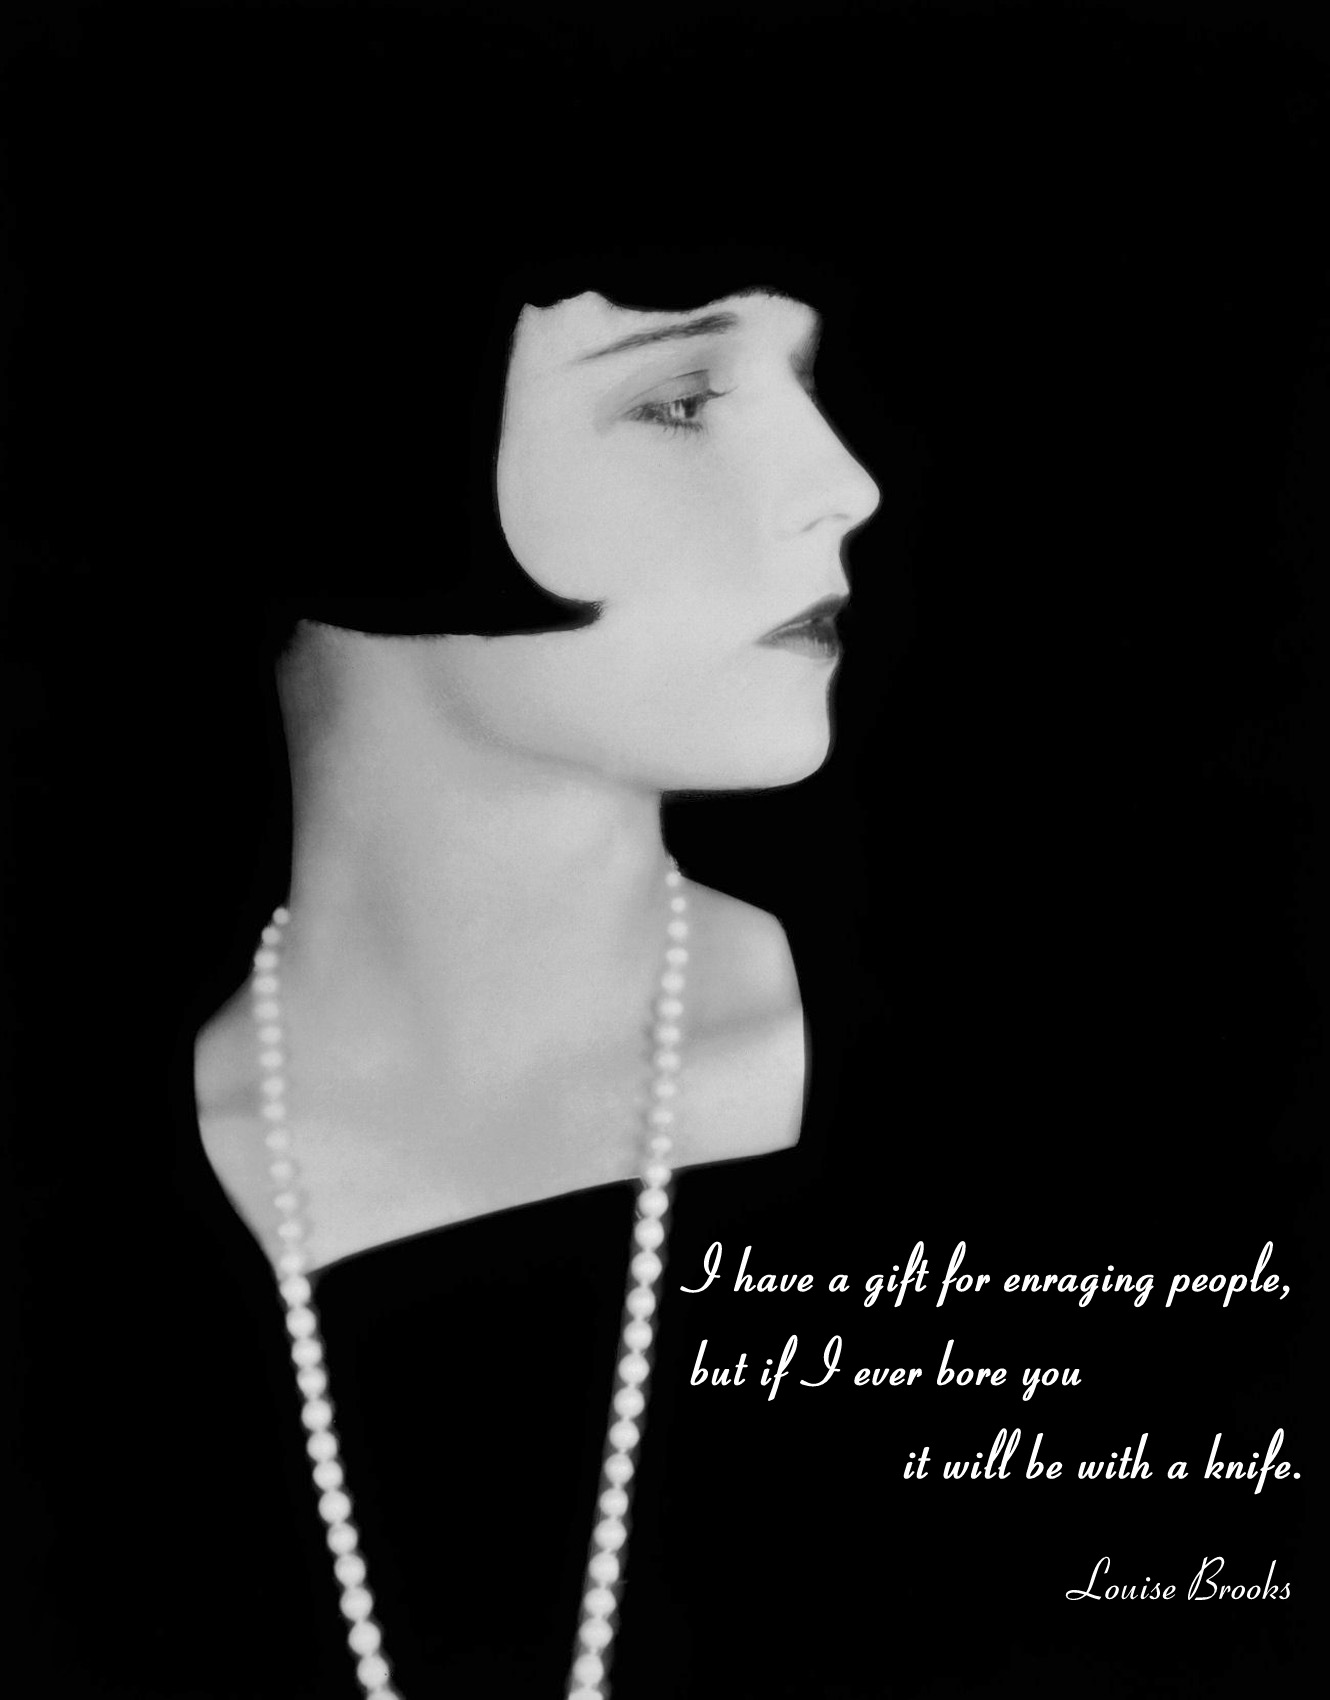 Louise Brooks will not bore you Cant Hardly Wait